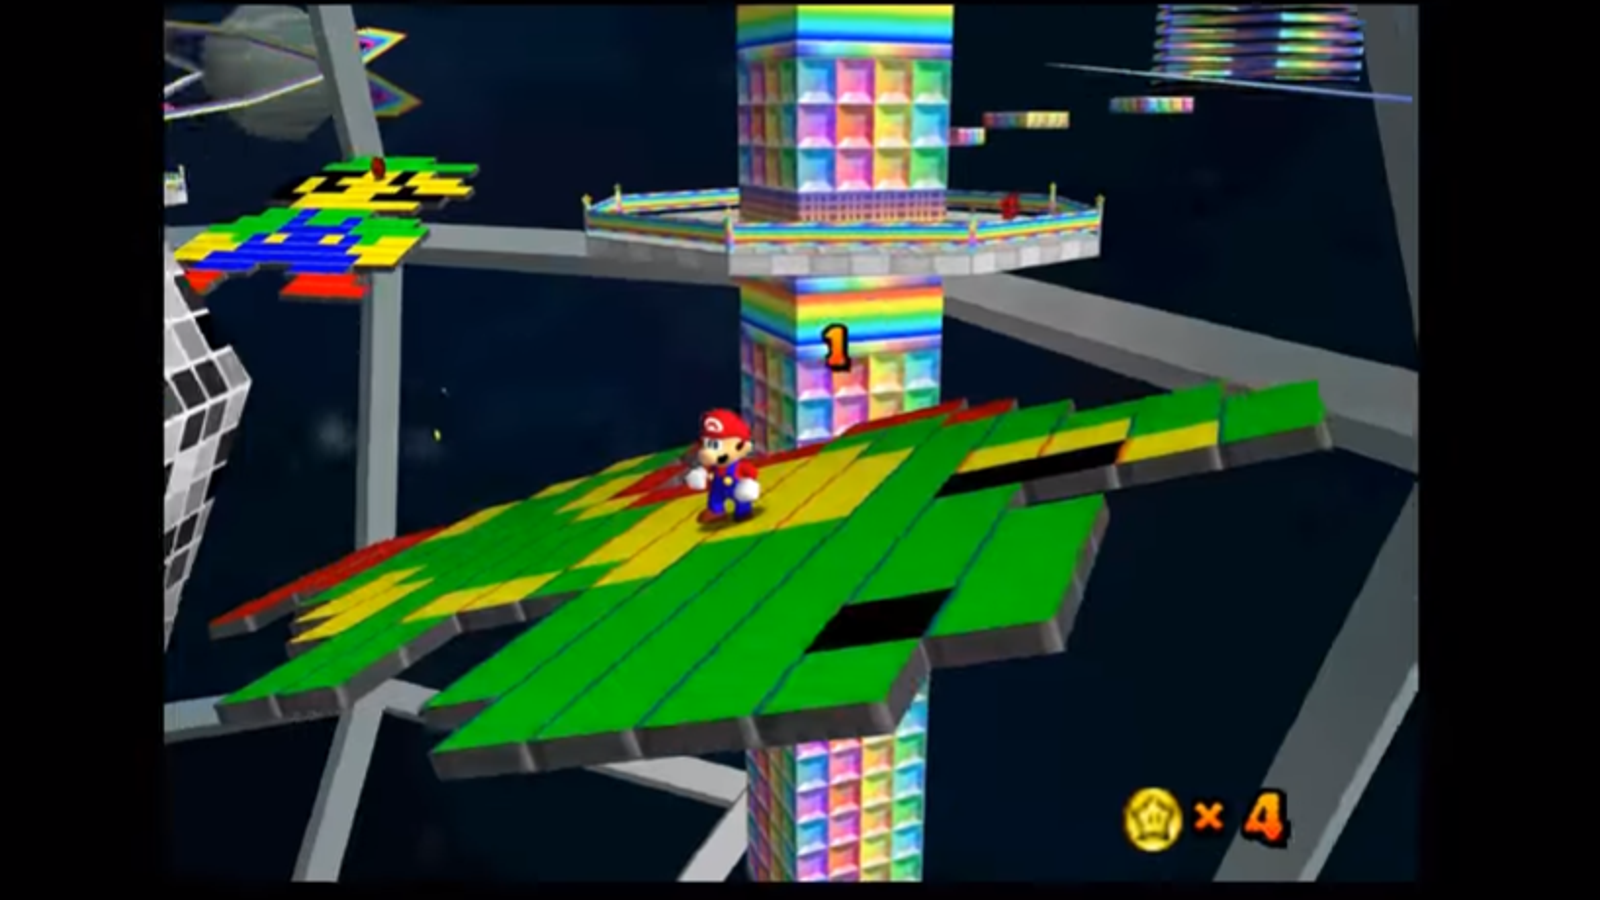 A Giant Super Mario 64 Hack That Reinvents The Game